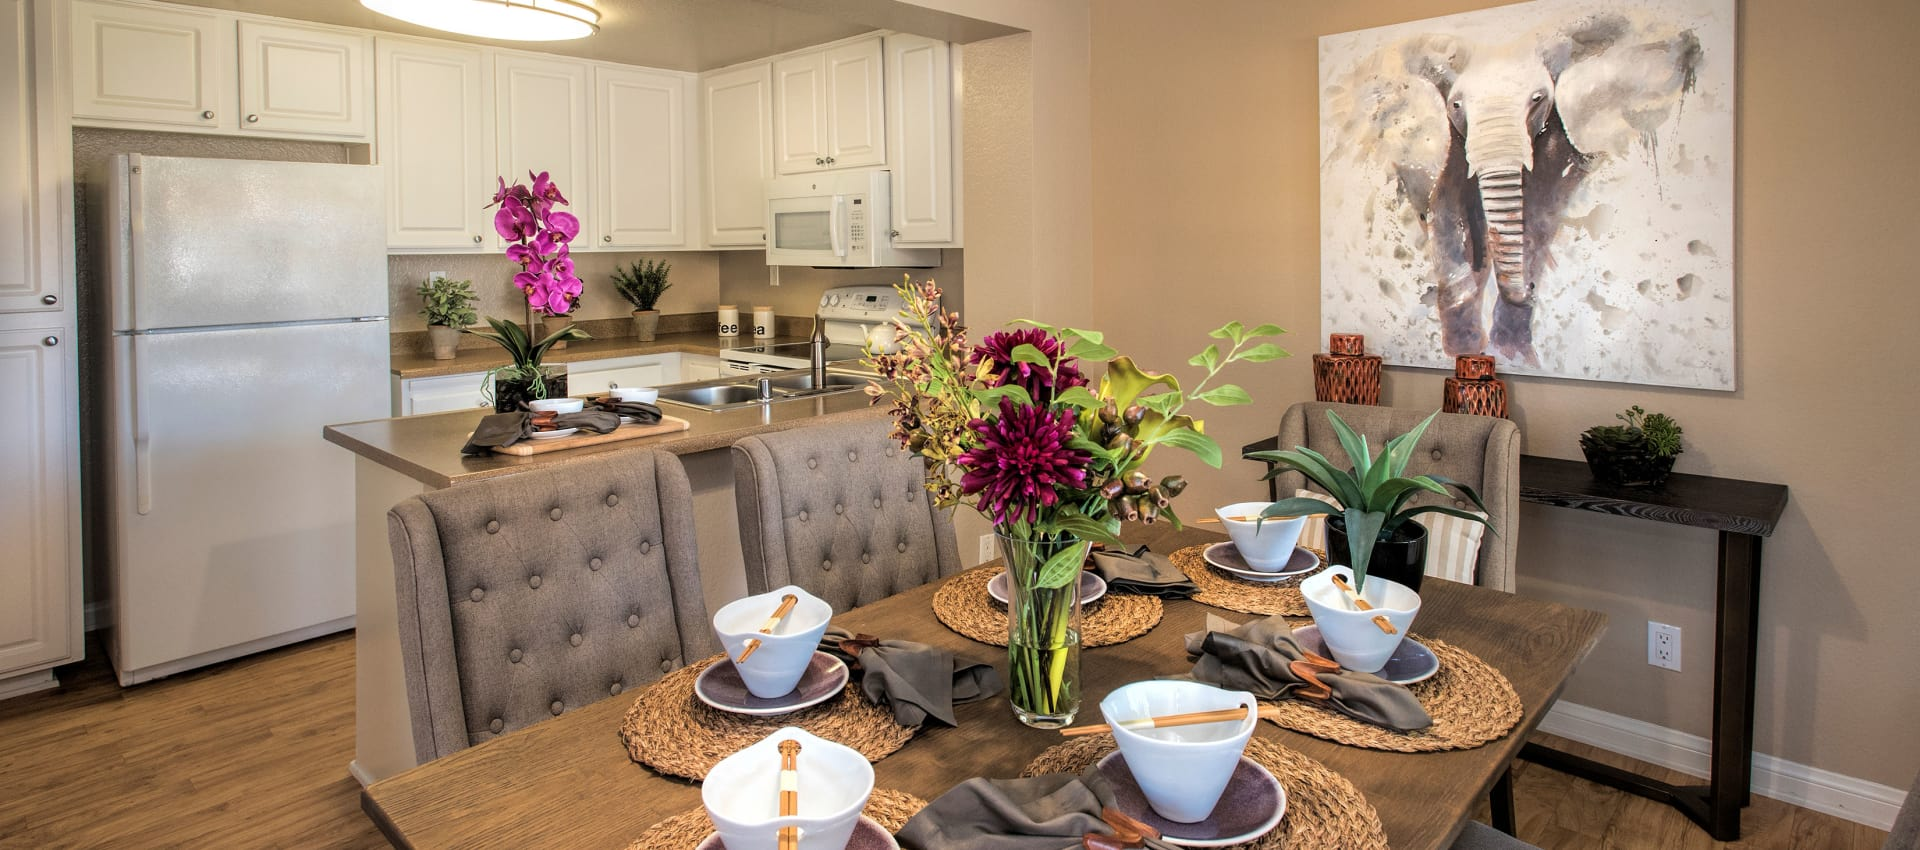 Dining room at Hidden Hills Condominium Rentals in Laguna Niguel, California